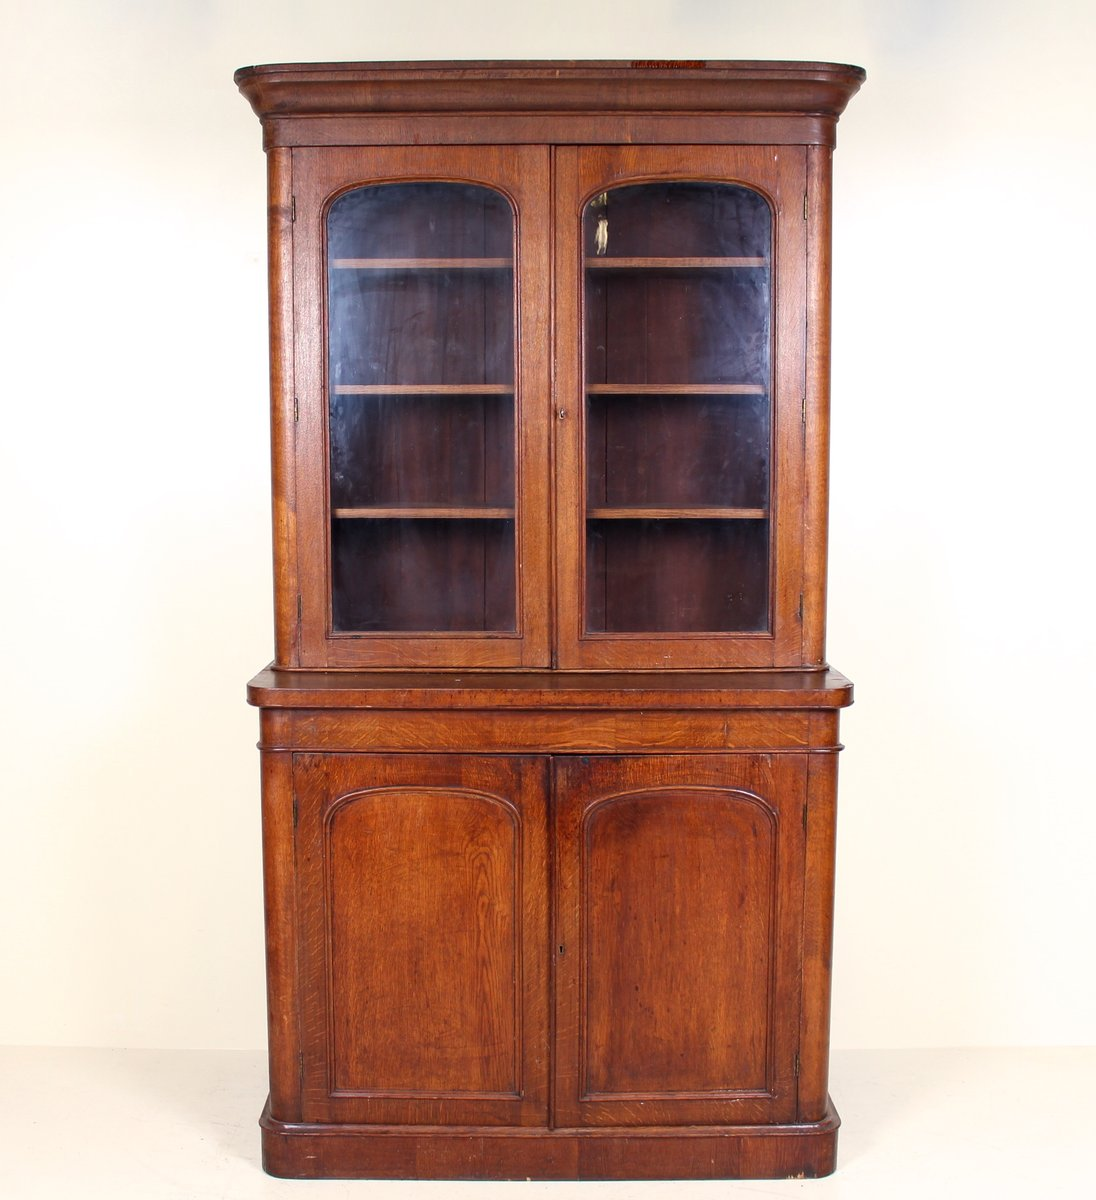 Large Antique Victorian Oak & Glass Display Cabinet - Large Antique Victorian Oak & Glass Display Cabinet For Sale At Pamono